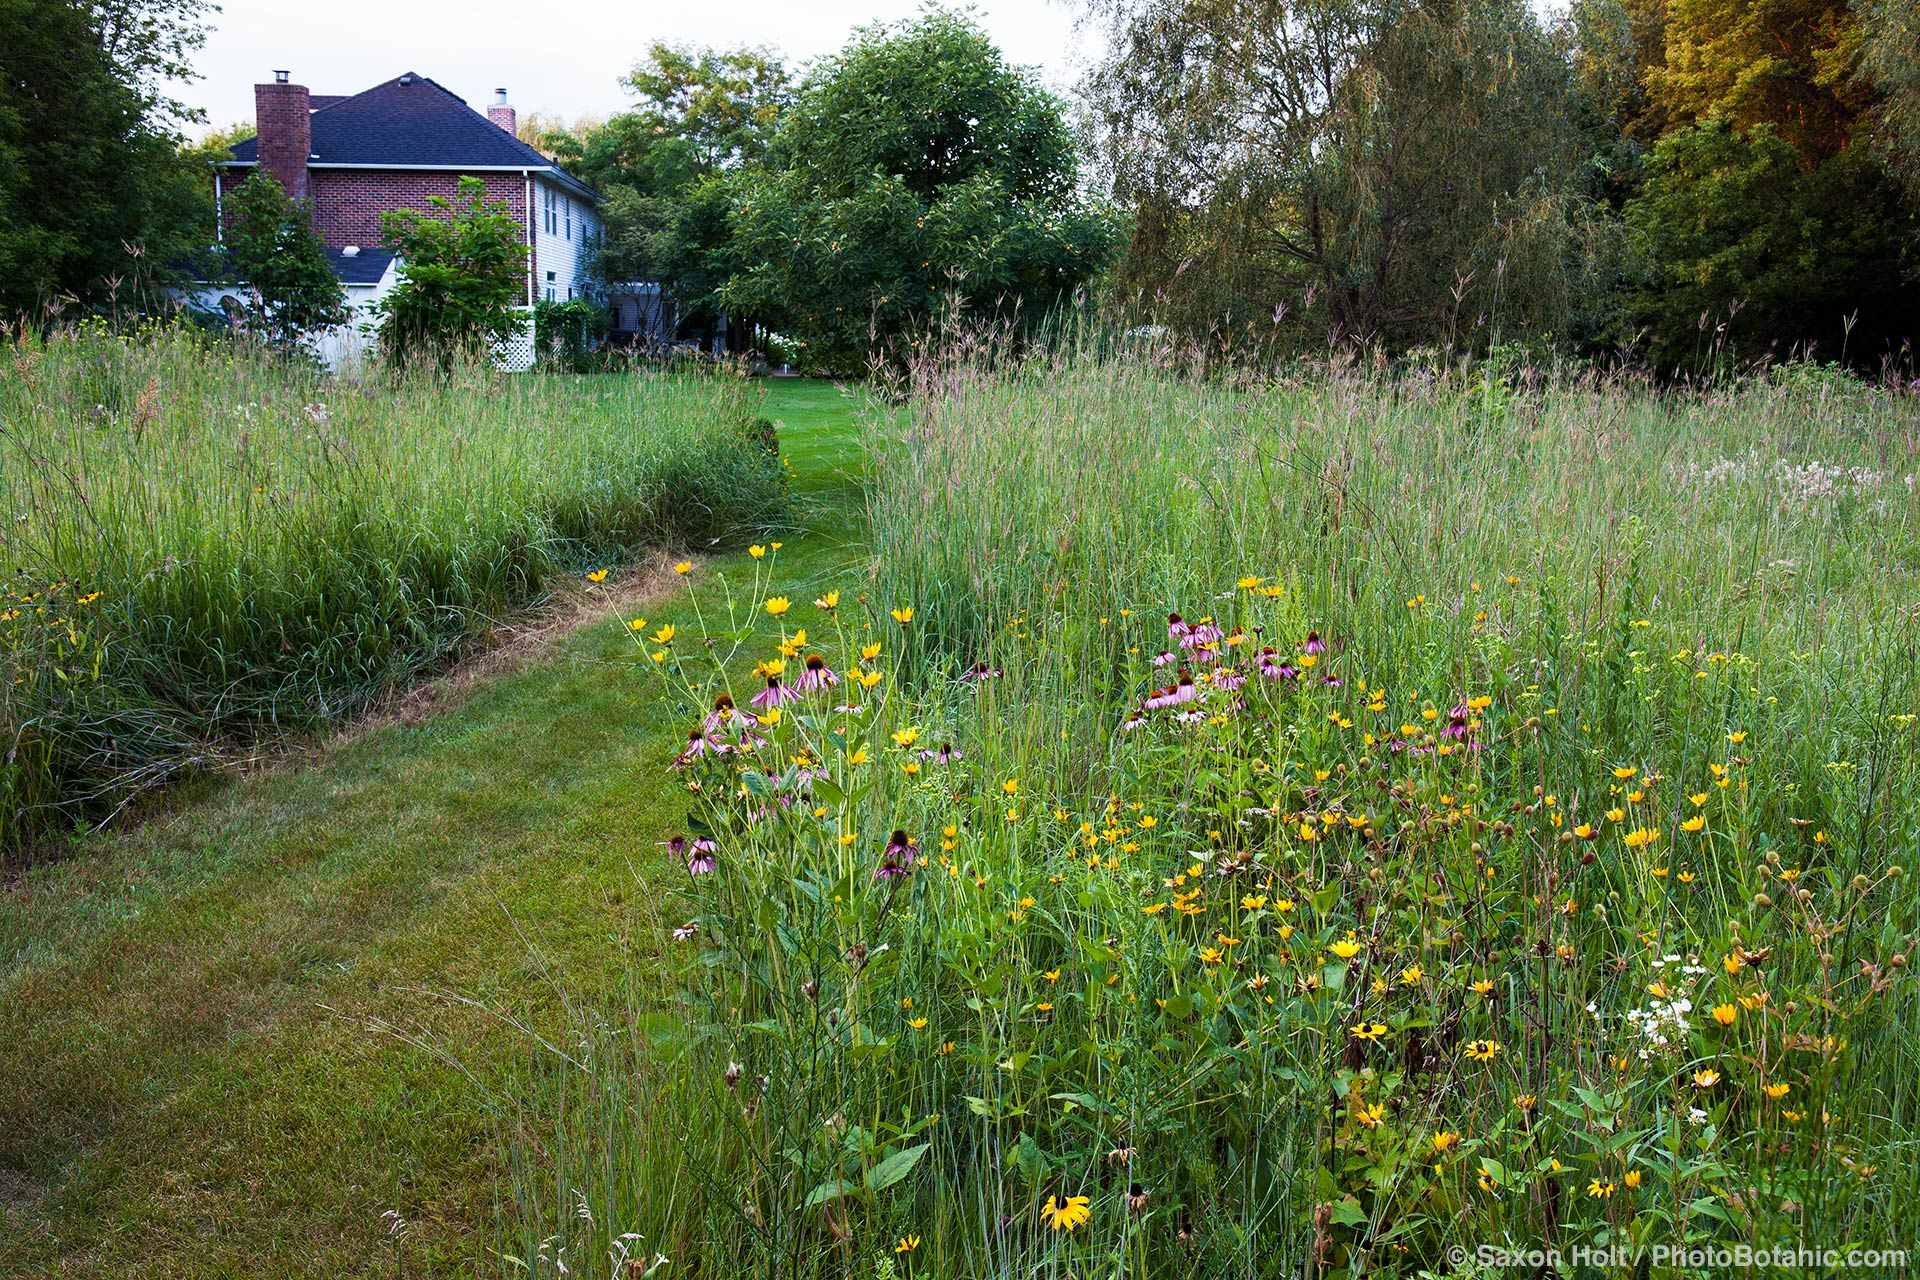 Wide mowed path through flowering meadow prairie garden, Willenberg garden